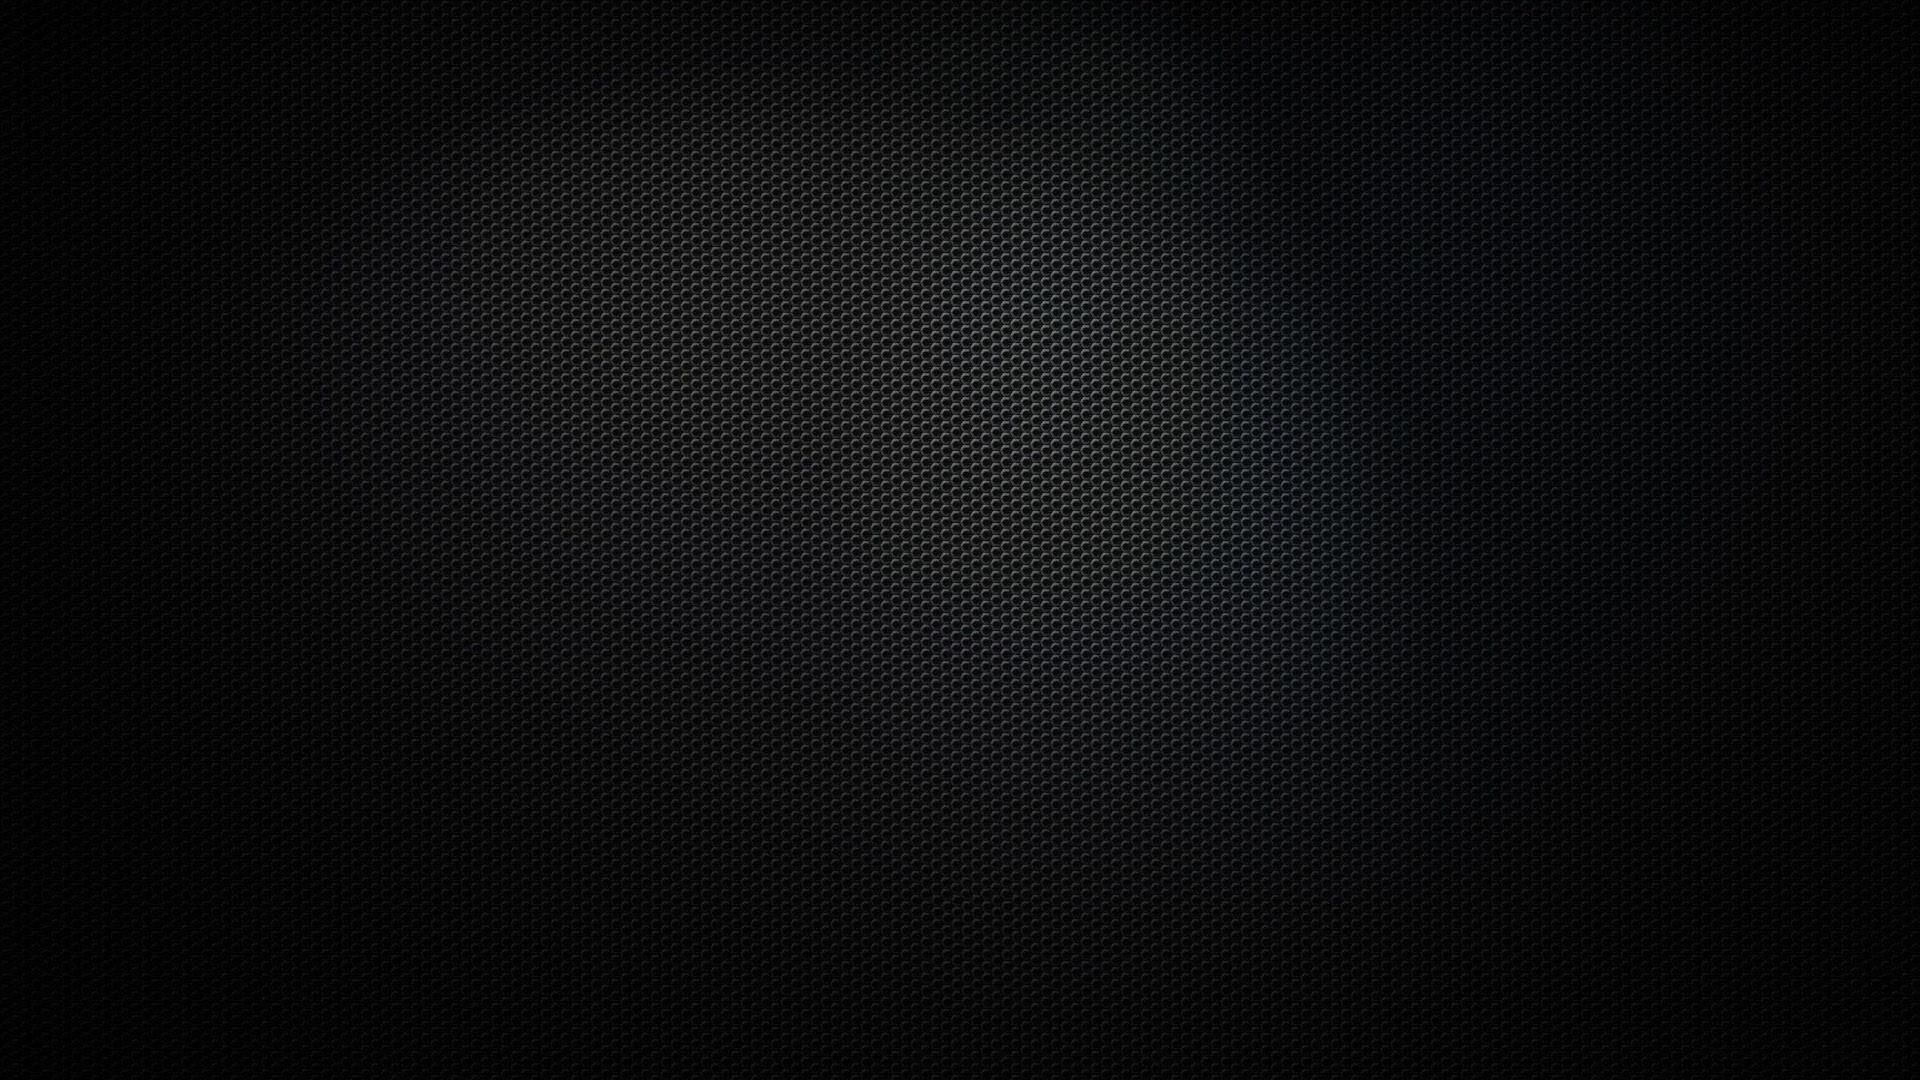 10 top high definition black wallpaper full hd 1080p for